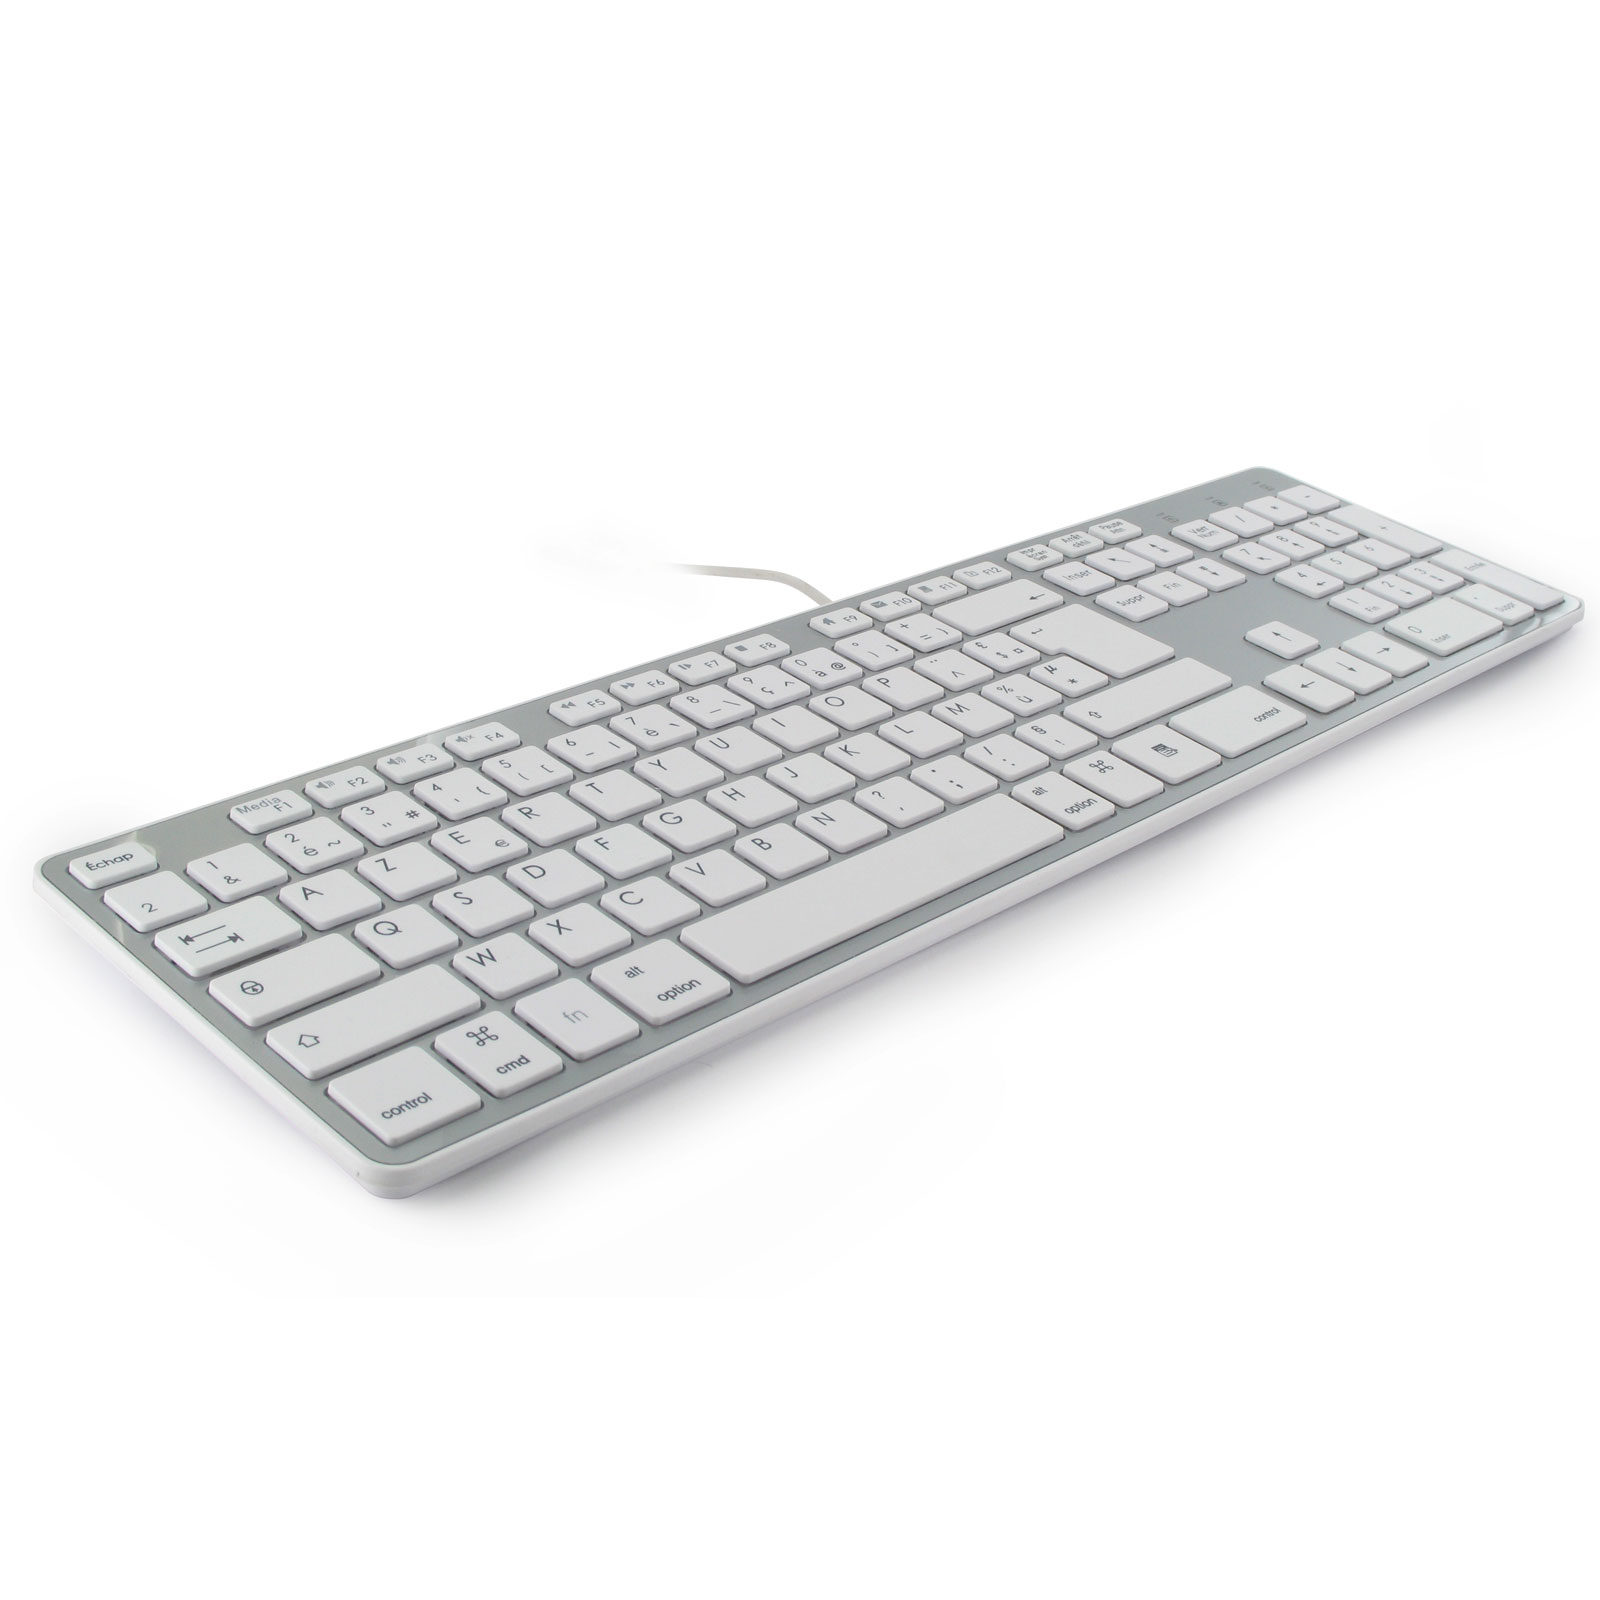 Mobility Lab Design Touch USB Blanc - Clavier PC Mobility Lab - 2